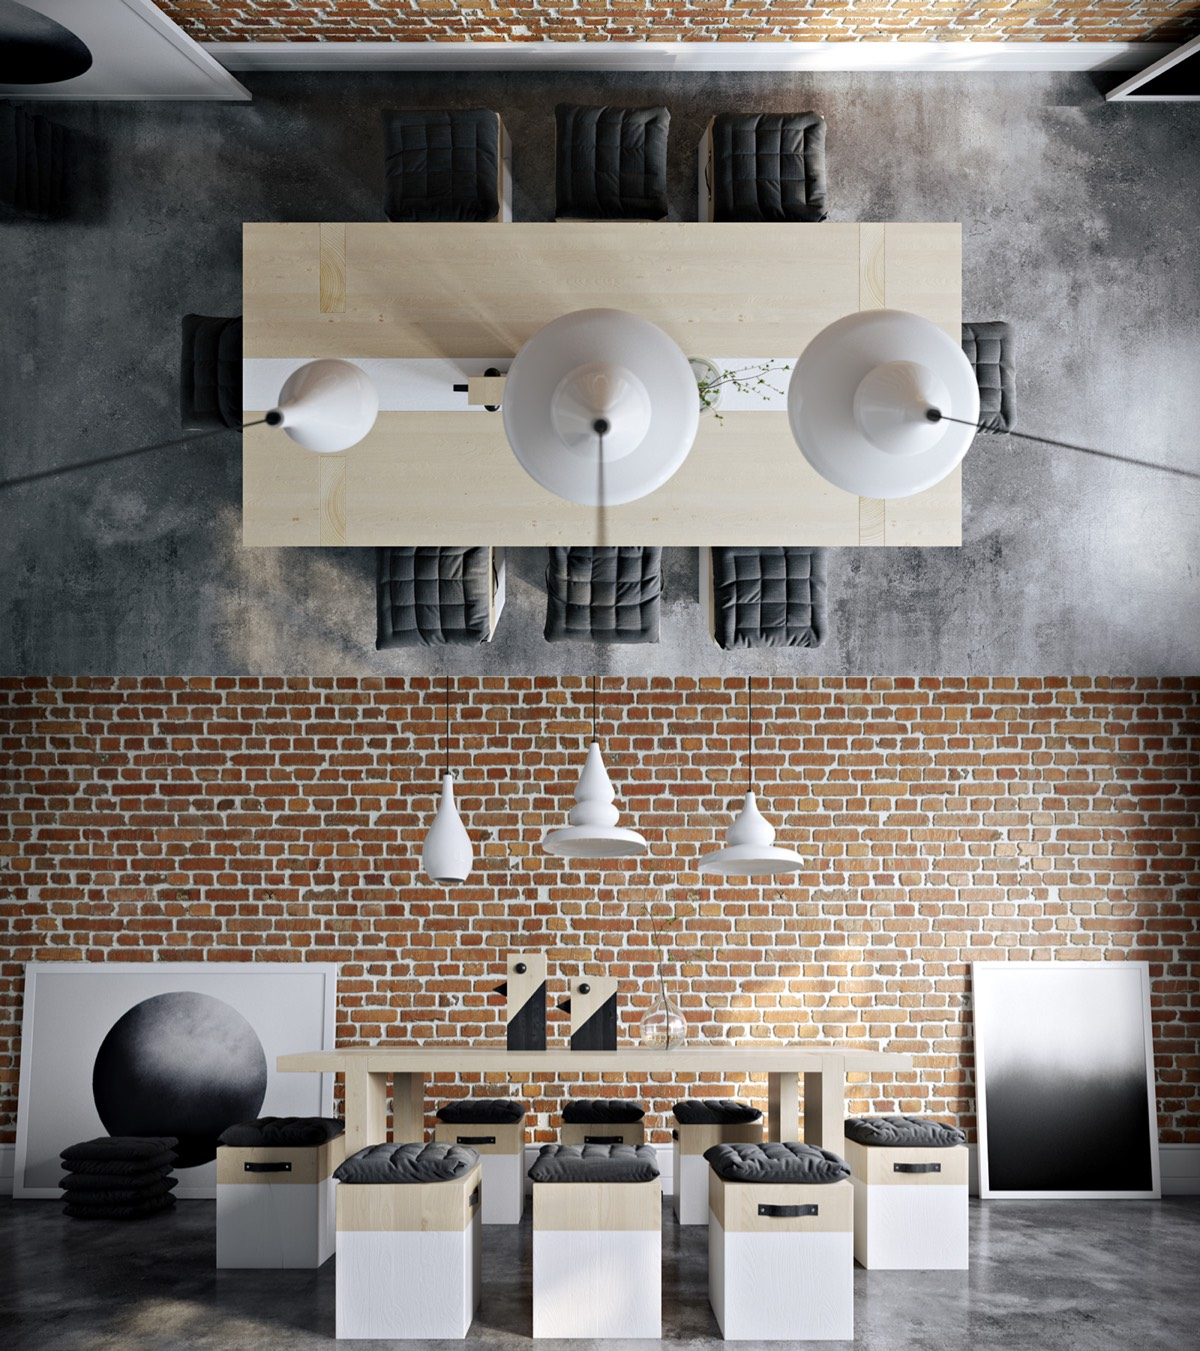 Exposed Brick Dining Room - Take a bite out of 24 modern dining rooms